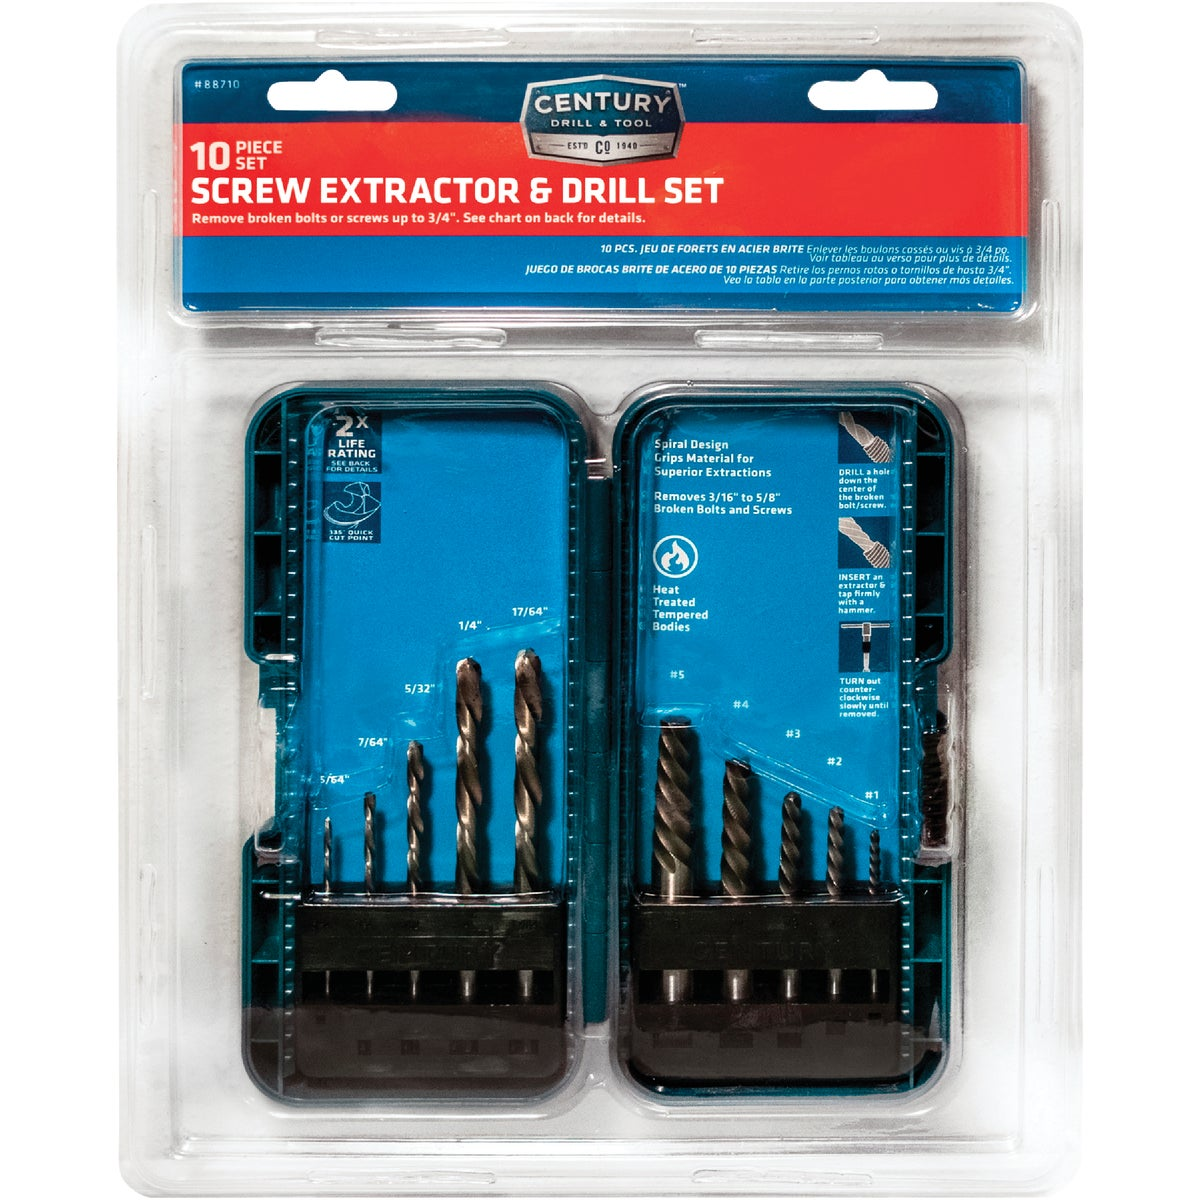 6PC SCREW EXTRACTOR SET - 53700 by Irwin Industr Tool